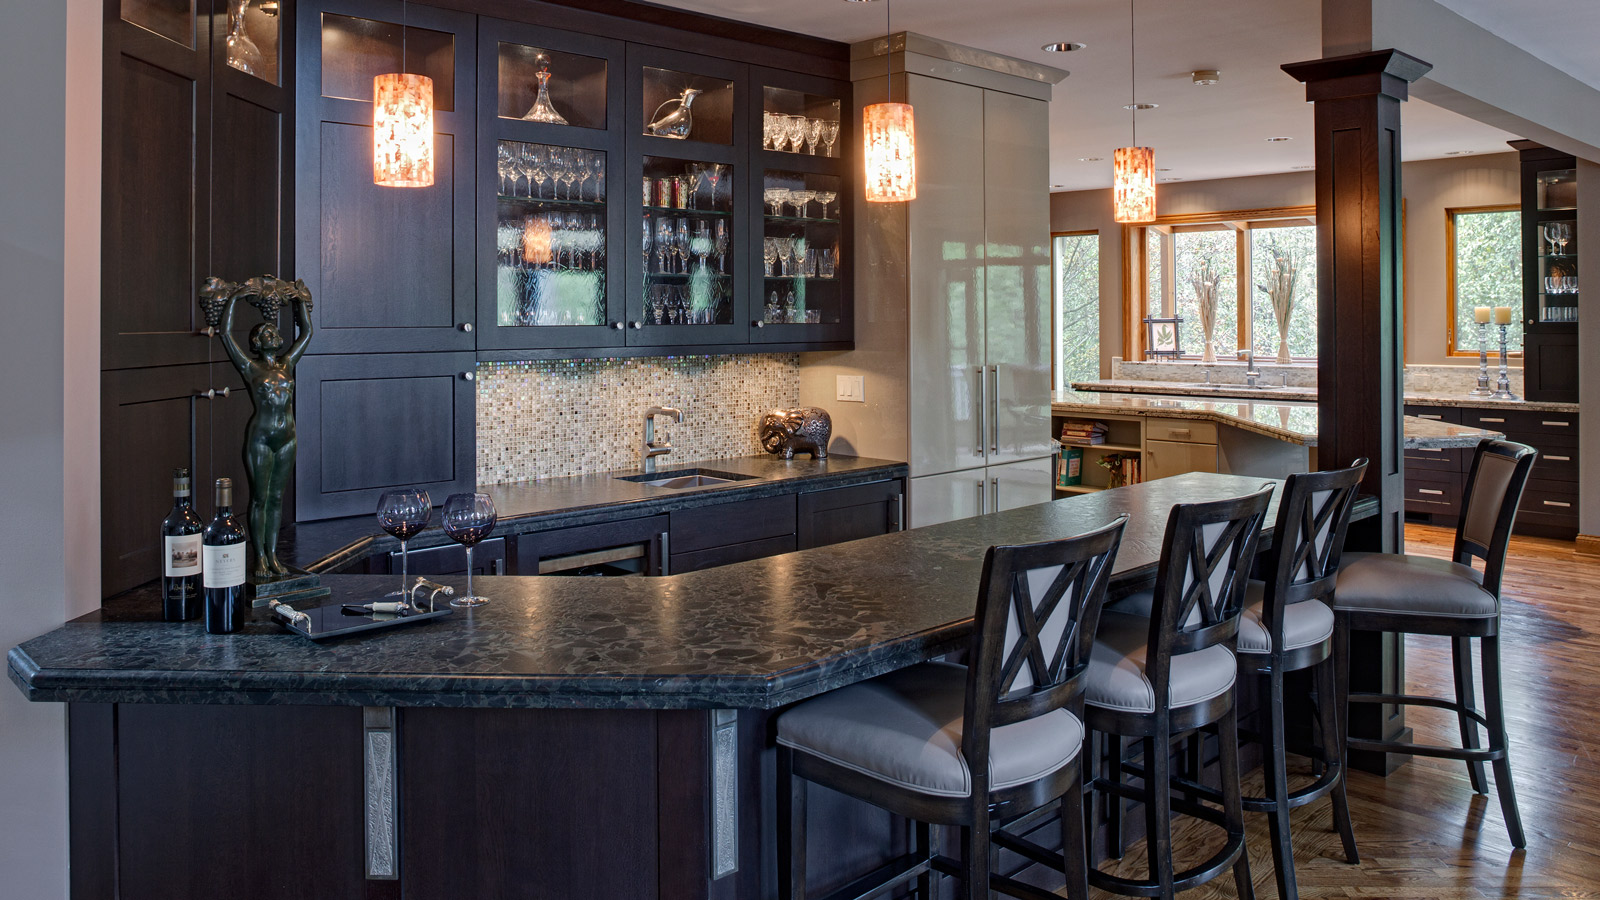 1600-x-900-Award-Winning-Glen-Ellyn-Kitchen-in-Transition-drury-design4